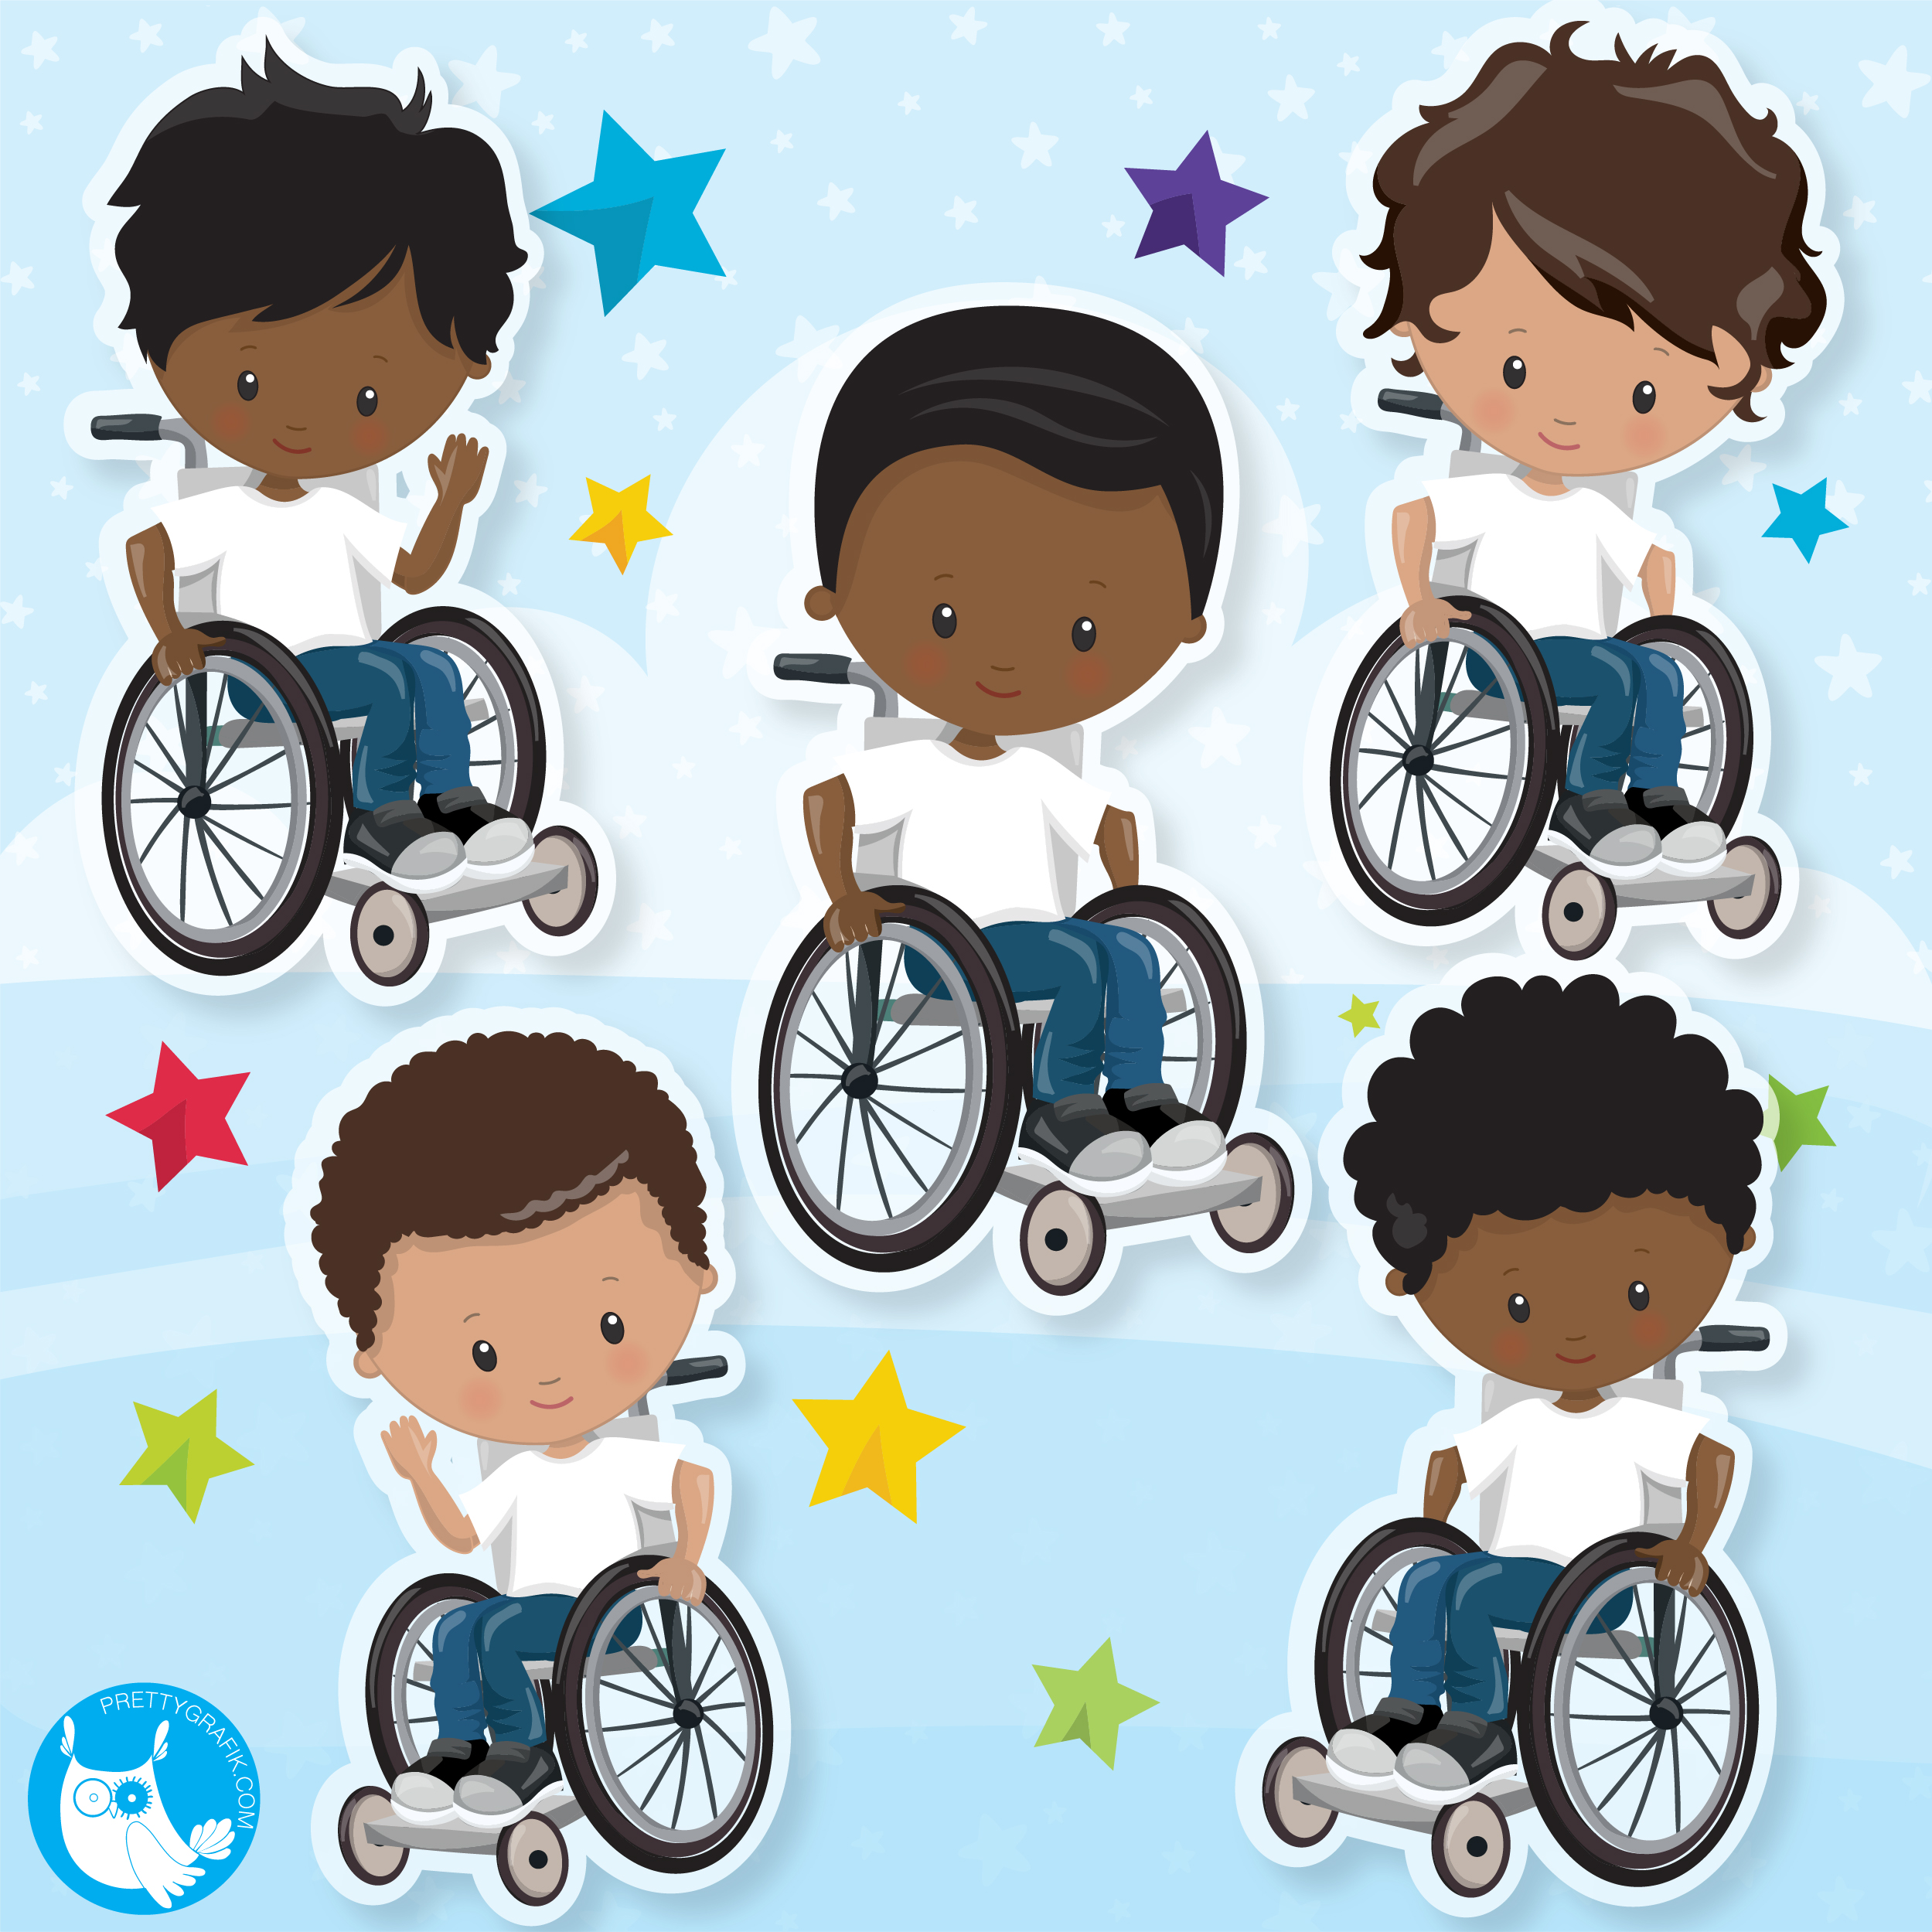 Boys on wheelchair clipart.